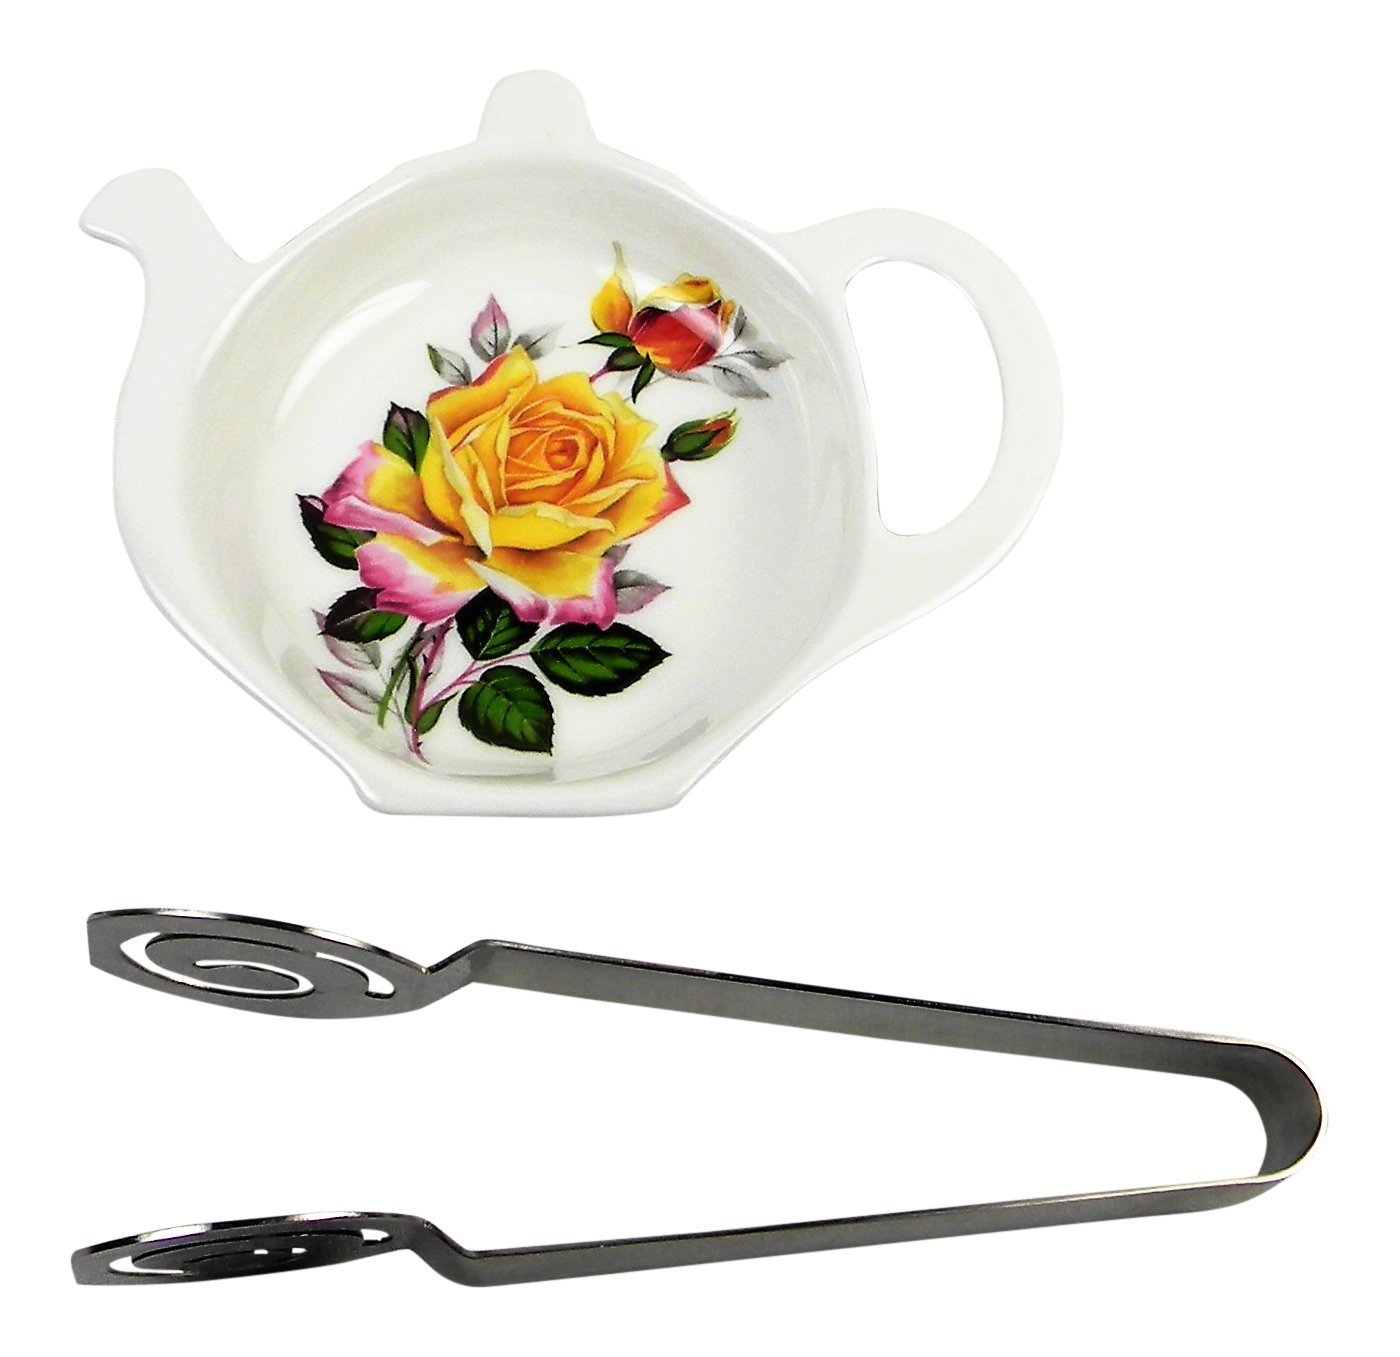 Adderley Bone China Tea Bag Coaster Caddy and Stainless Steel Tea Bag Squeezer England - Yellow Rose